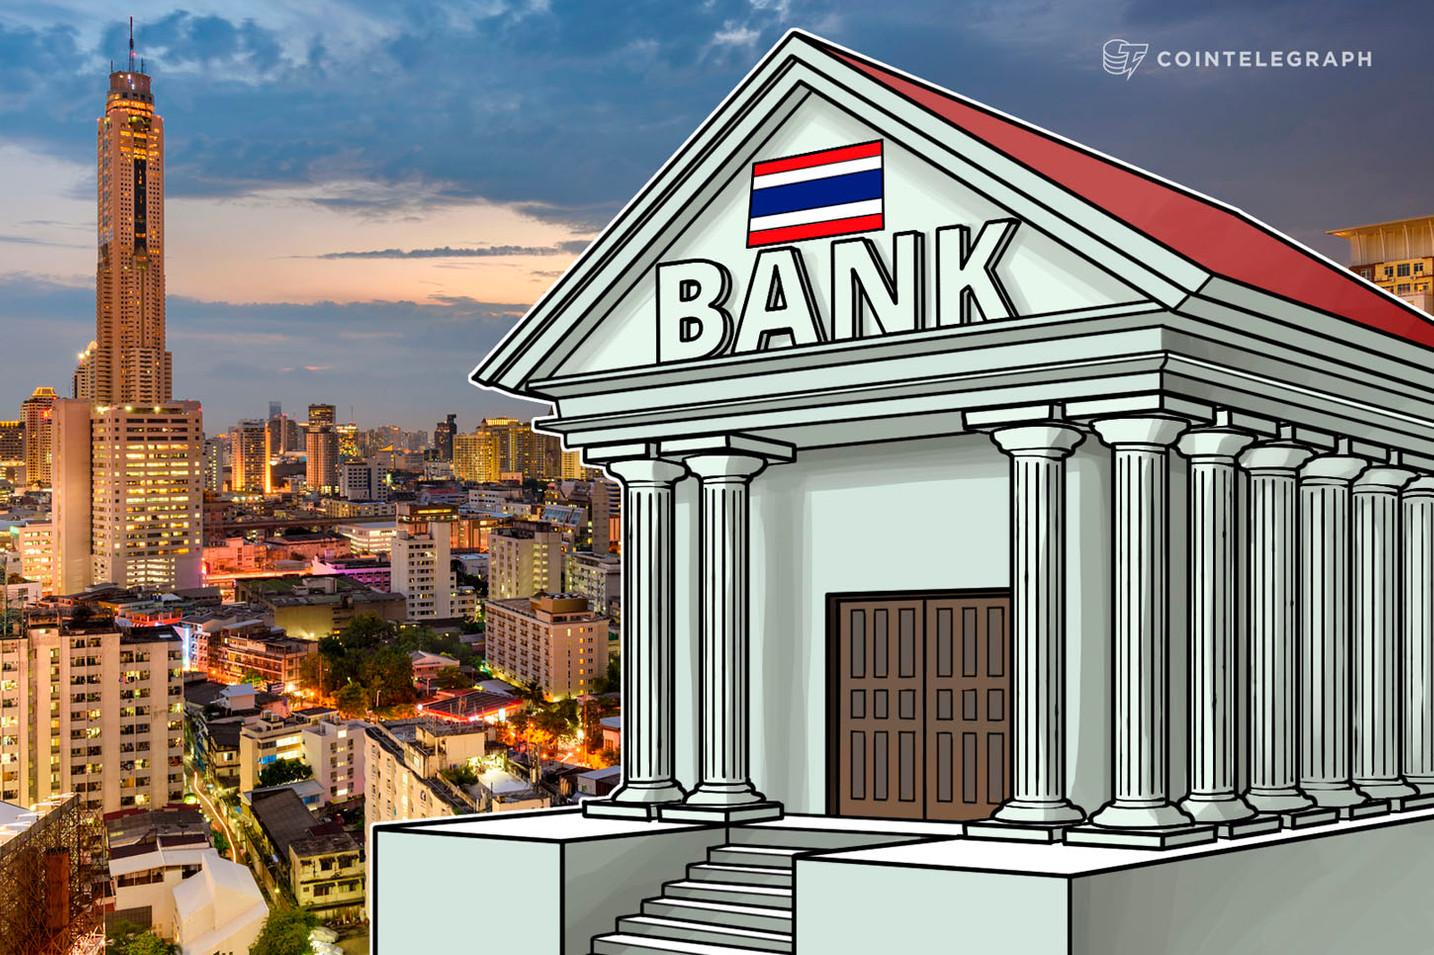 Biggest Thai Bank Joins R3 Consortium's Trade Finance Pact Marco Polo